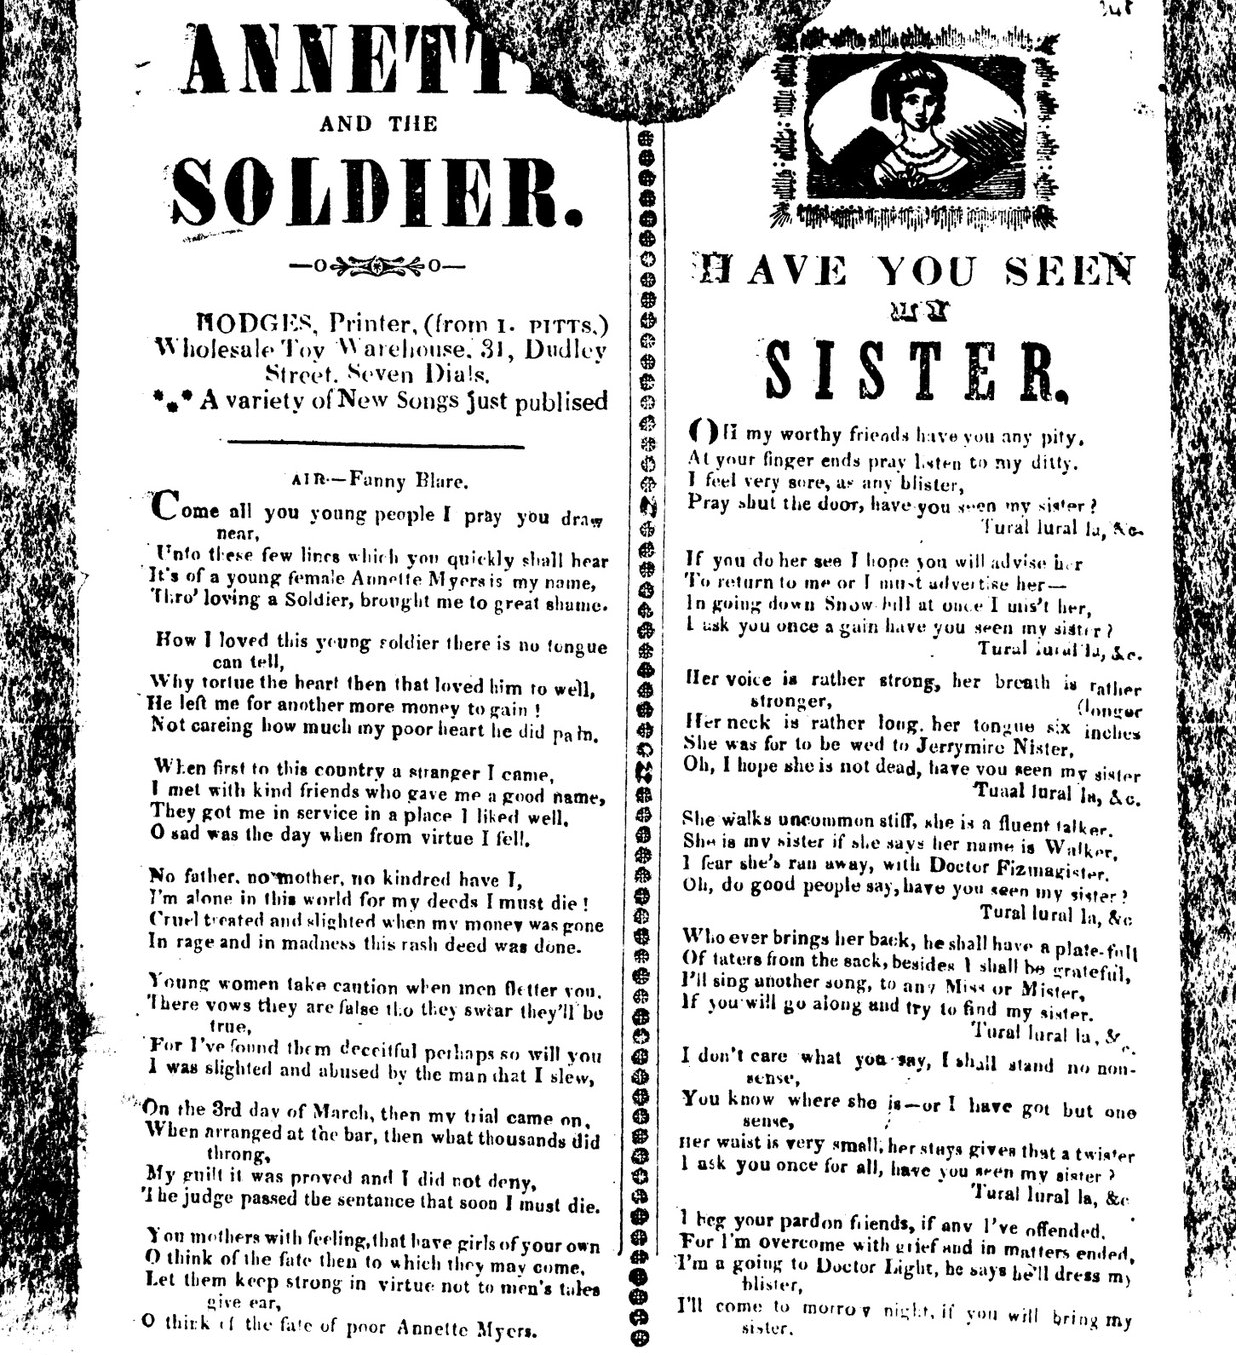 Annette and the soldier. Broadside Ballads Online.  Bodleian Library V5720